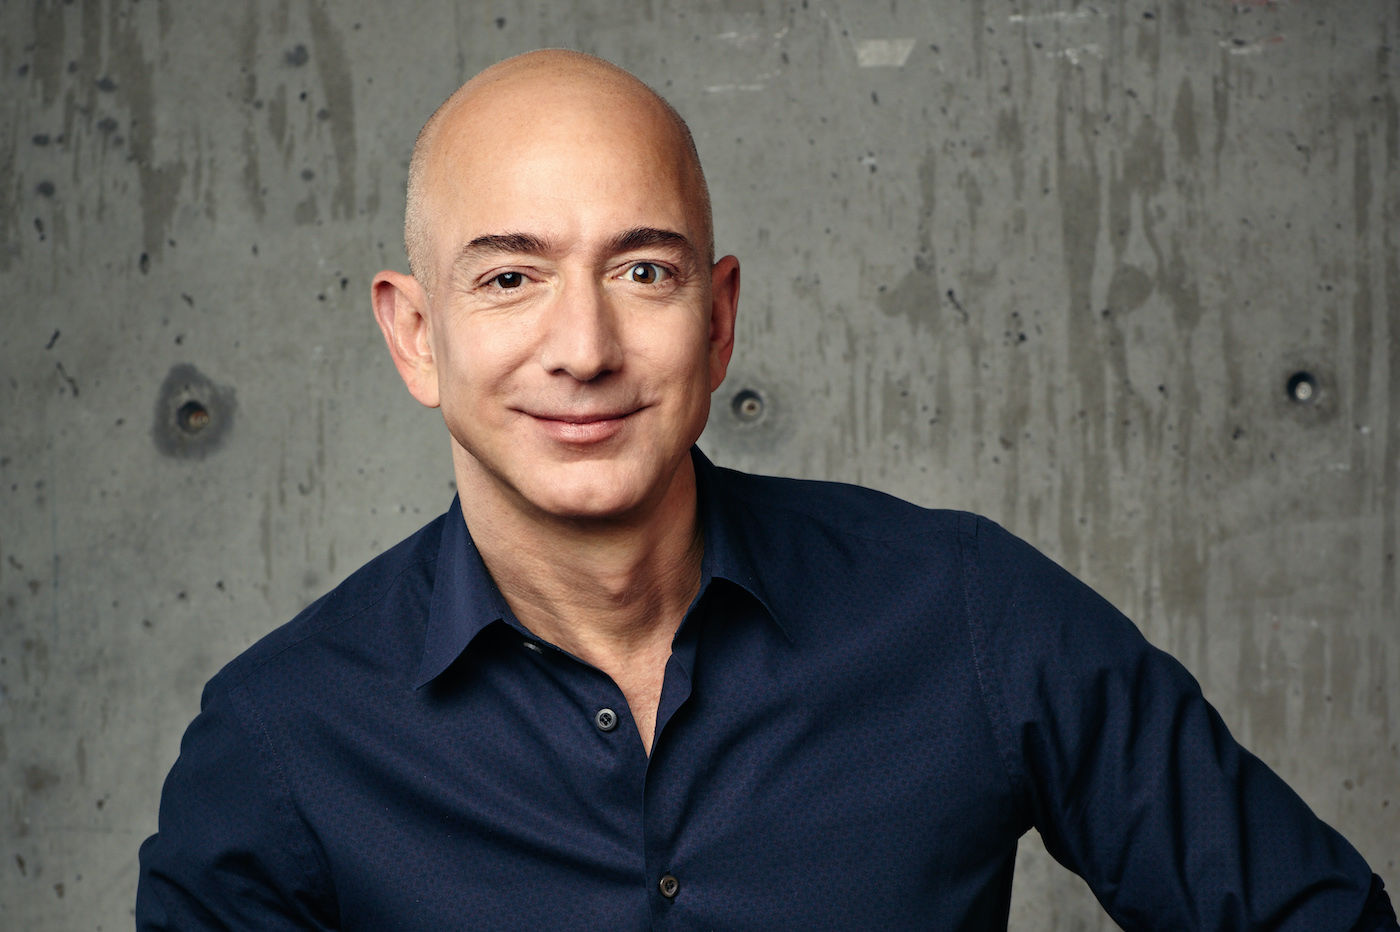 Forbes richest people in the world 2021